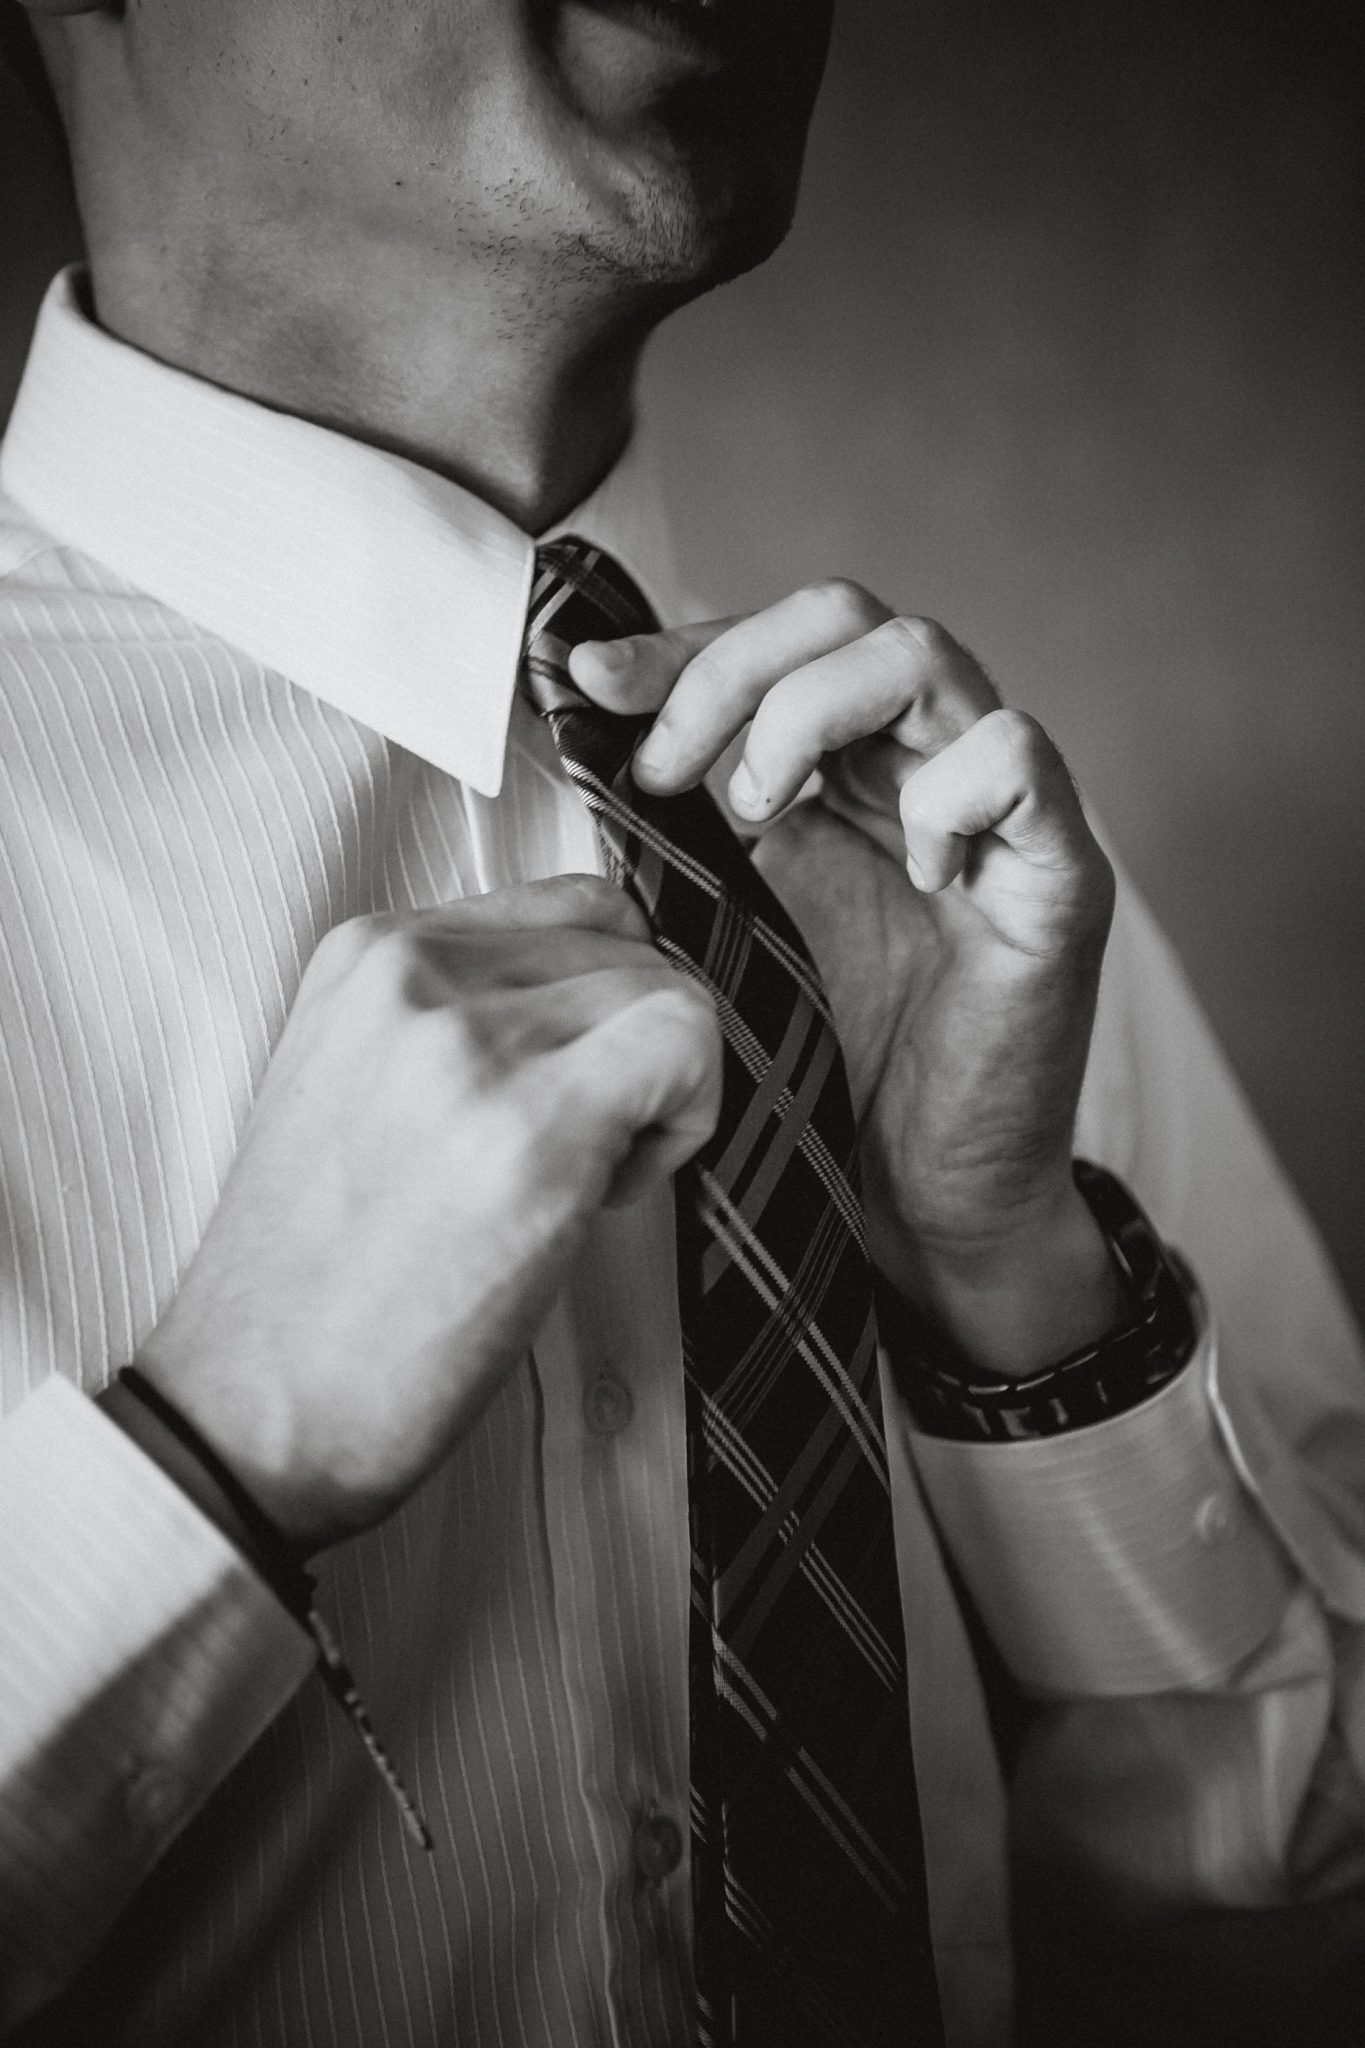 Black and white image of a groom tying his tie on the wedding day